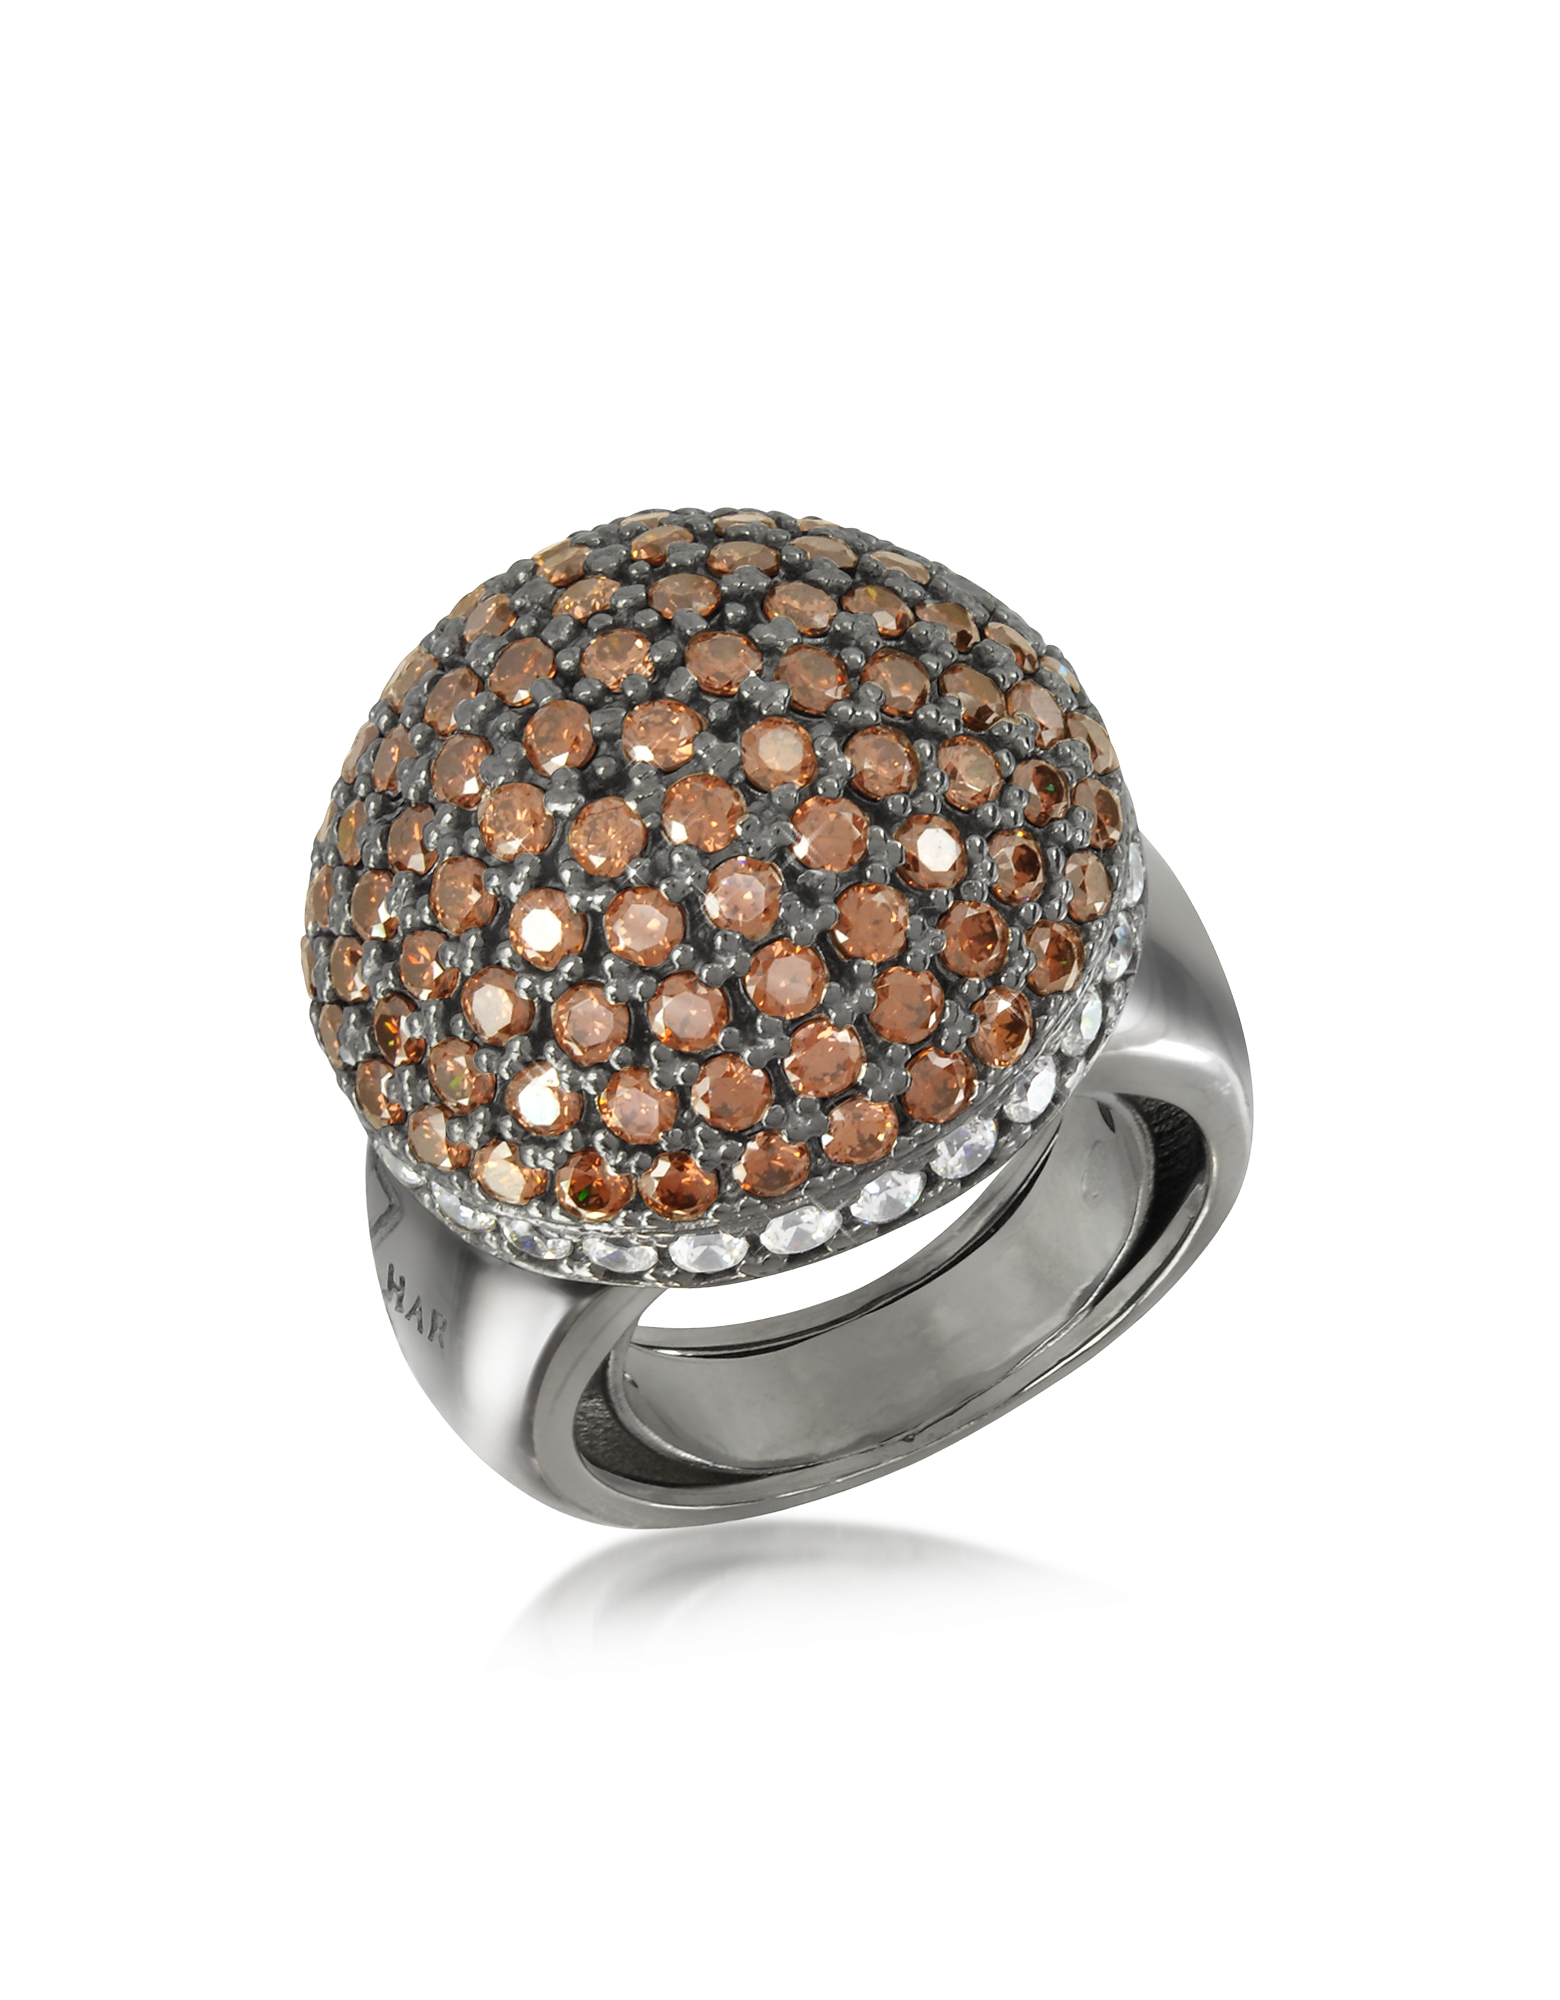 Azhar Designer Rings, Sterling Silver Cubic Zirconia Semi-Sphere Cocktail Ring